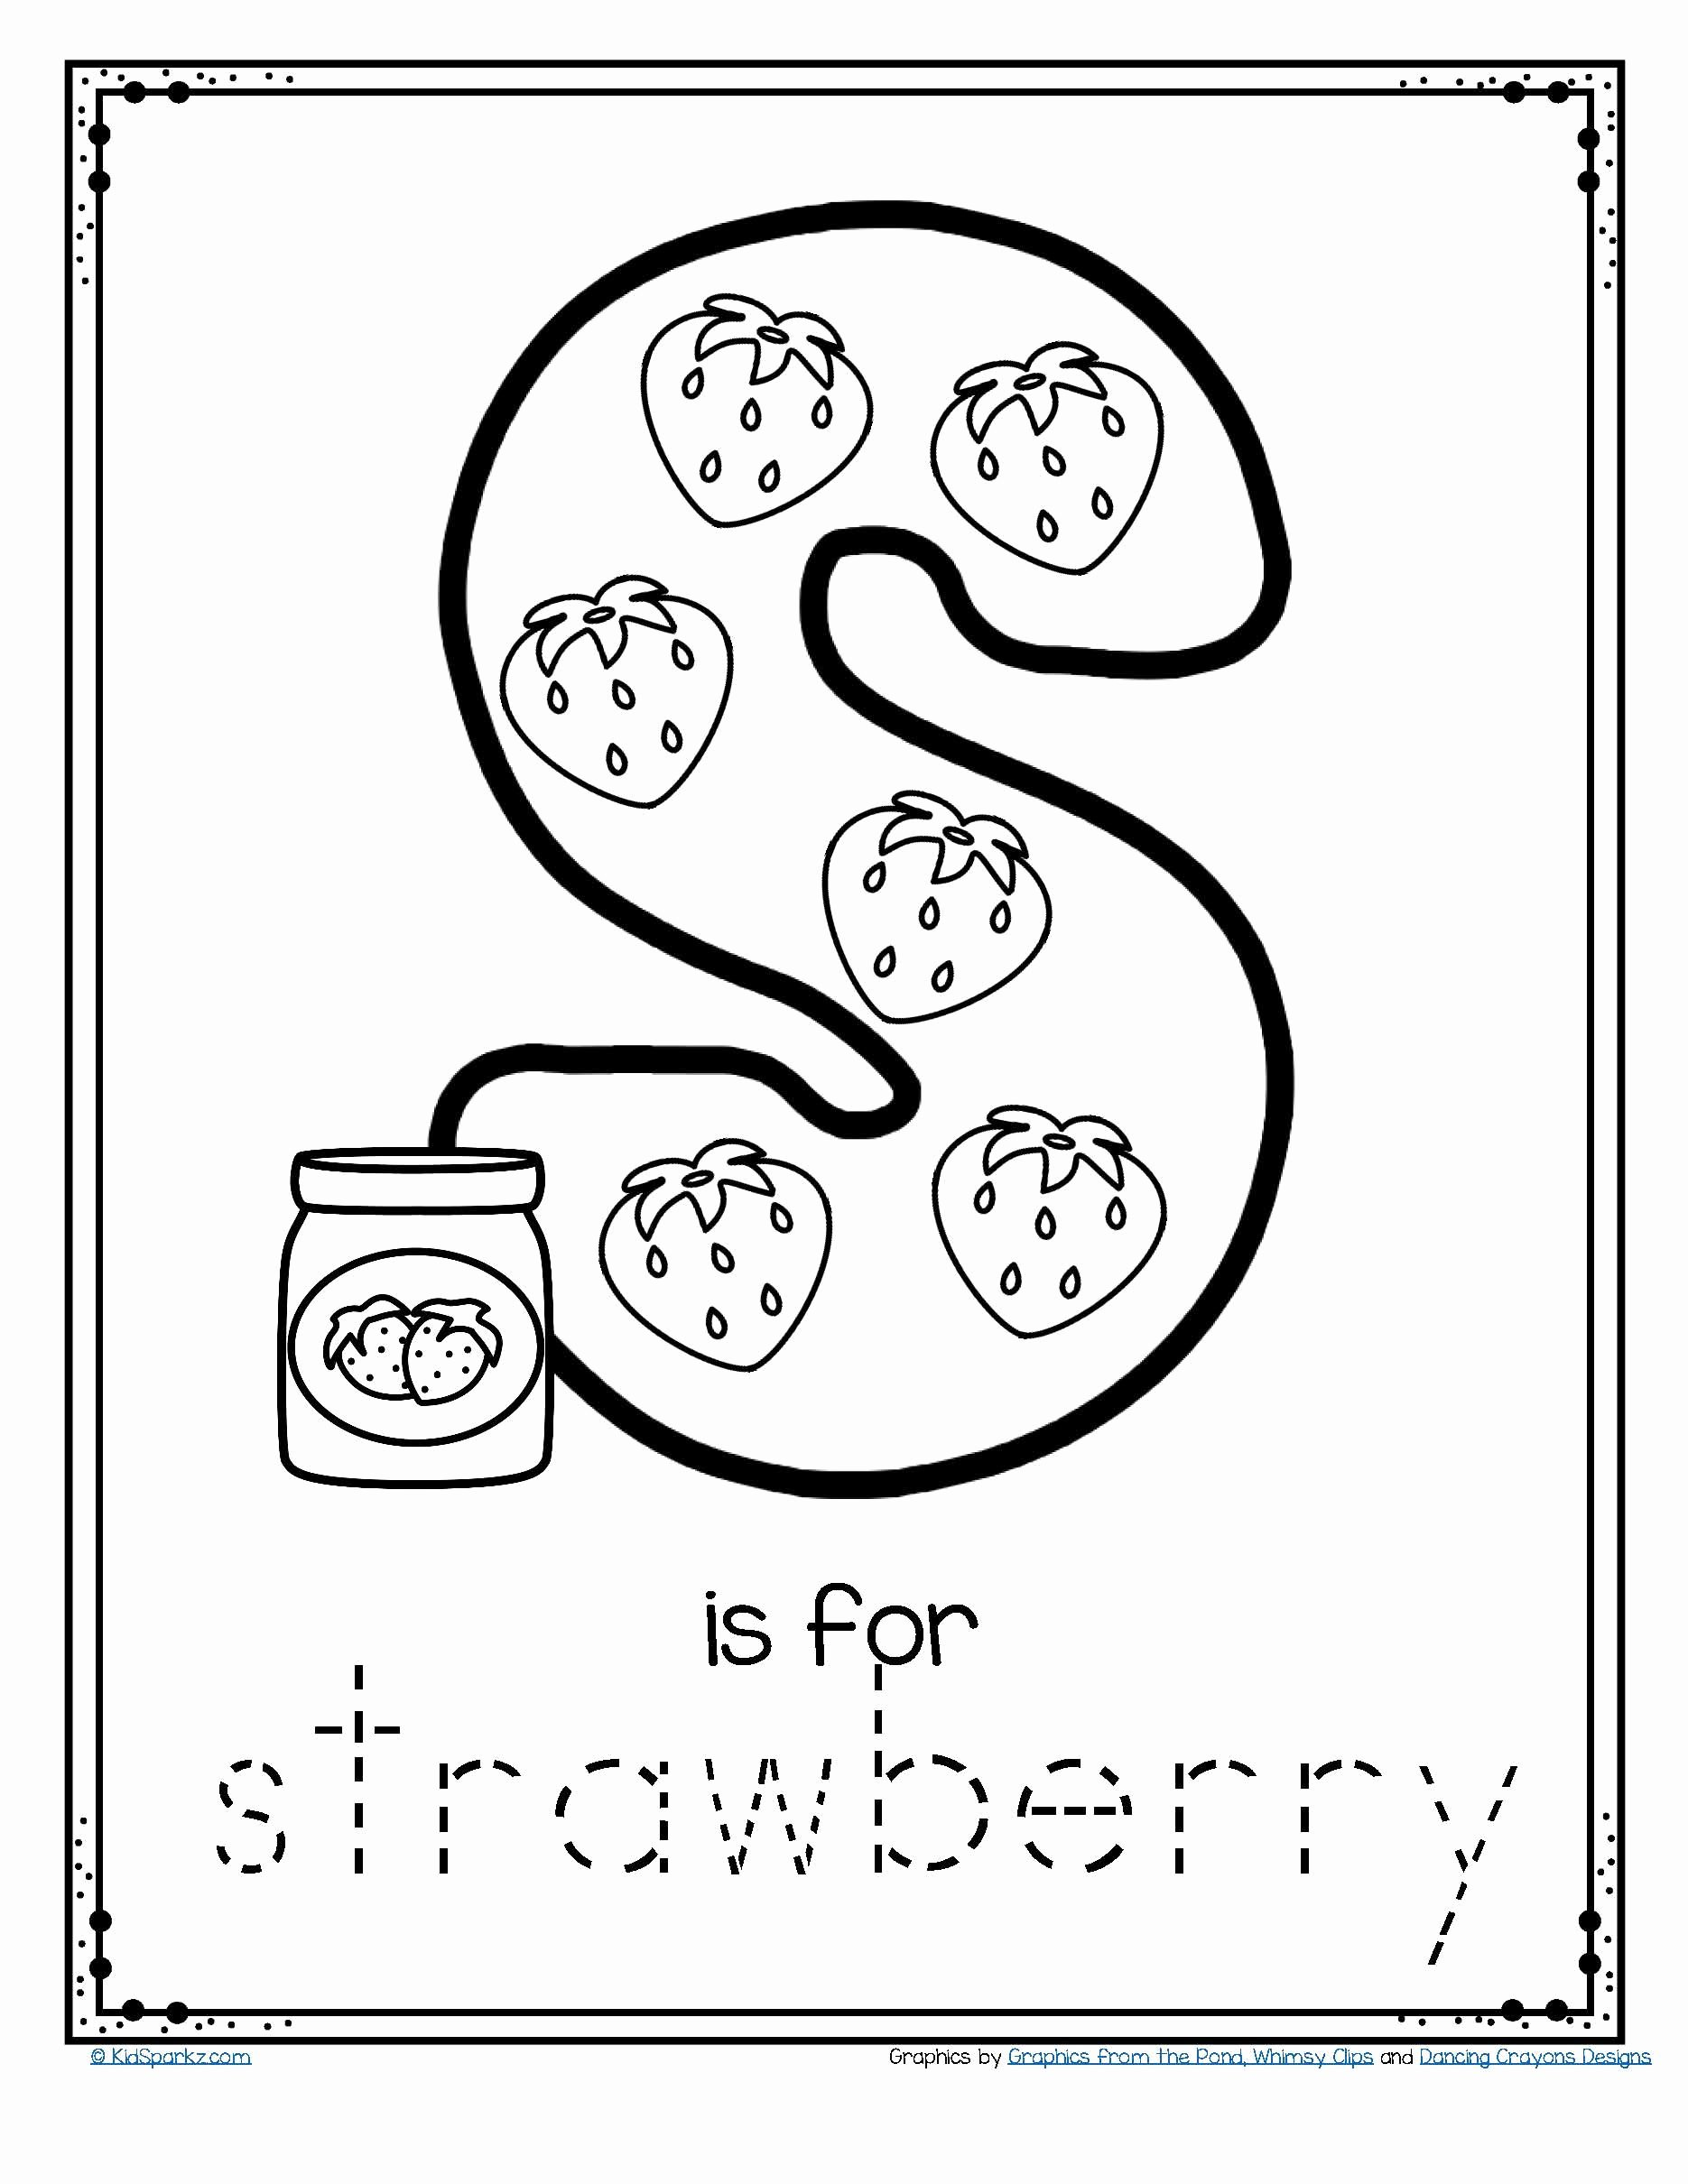 Free Homeschooling Worksheets for Preschoolers Best Of Free is for Strawberry Alphabet Letter Printable Traceable